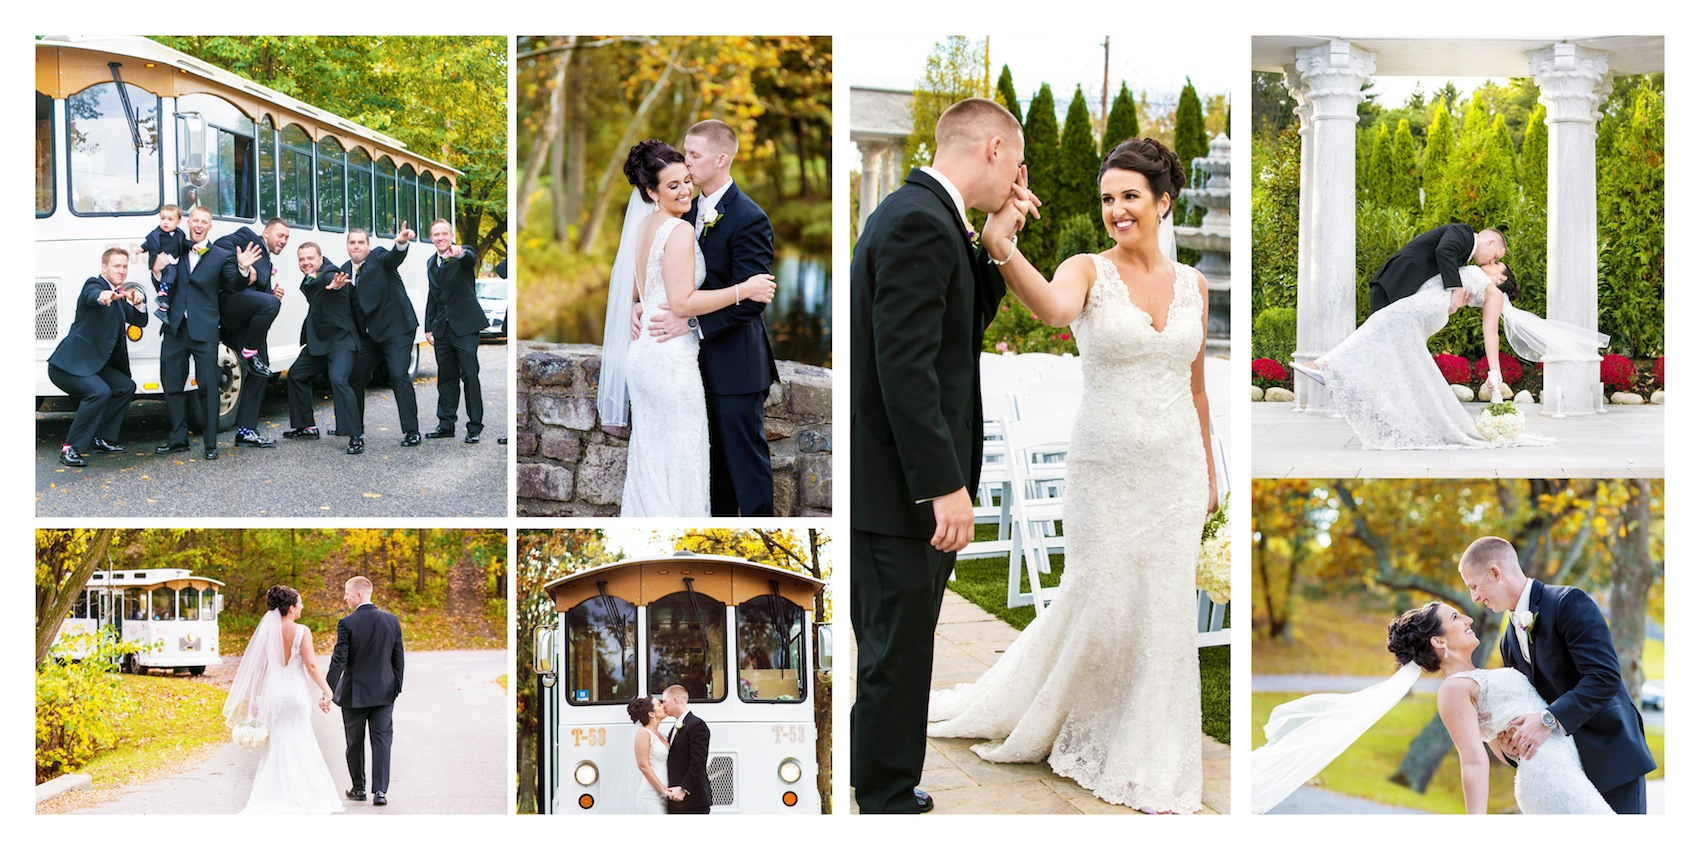 colleen-and-tommy-photo-session-album-page-from-nj-wedding-photography